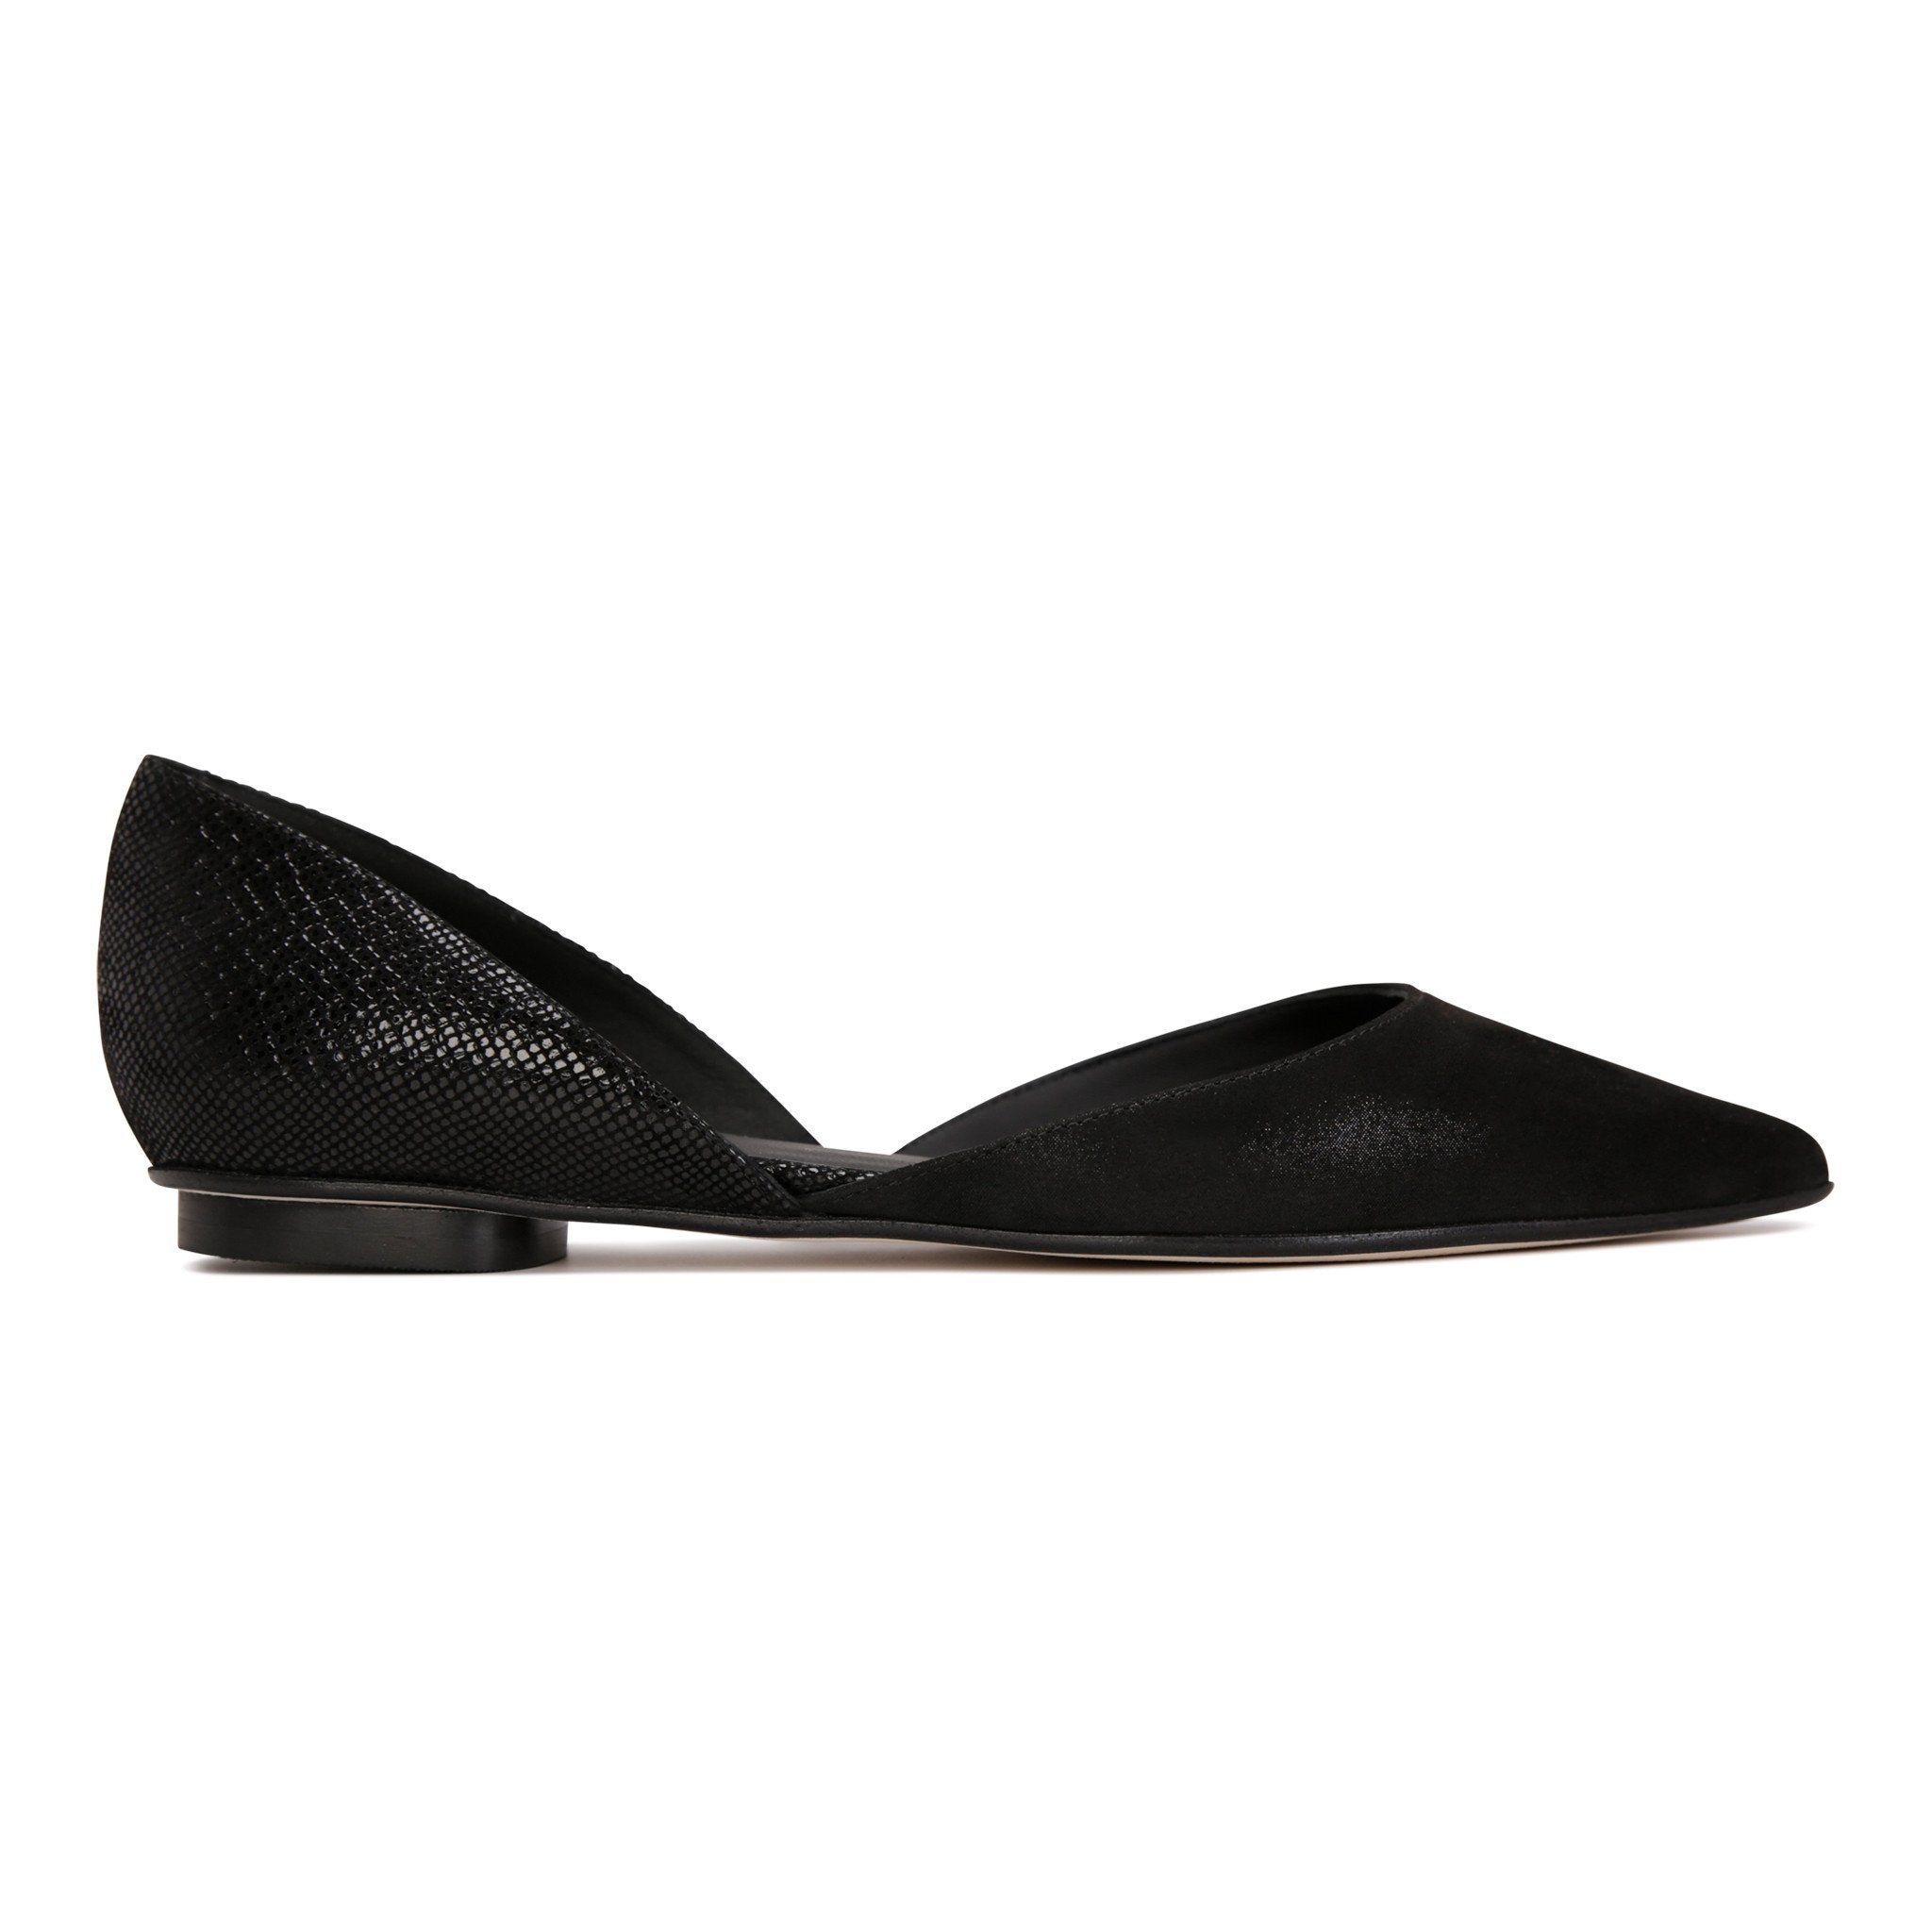 PONZA - Hydra + Karung Nero, VIAJIYU - Women's Hand Made Sustainable Luxury Shoes. Made in Italy. Made to Order.